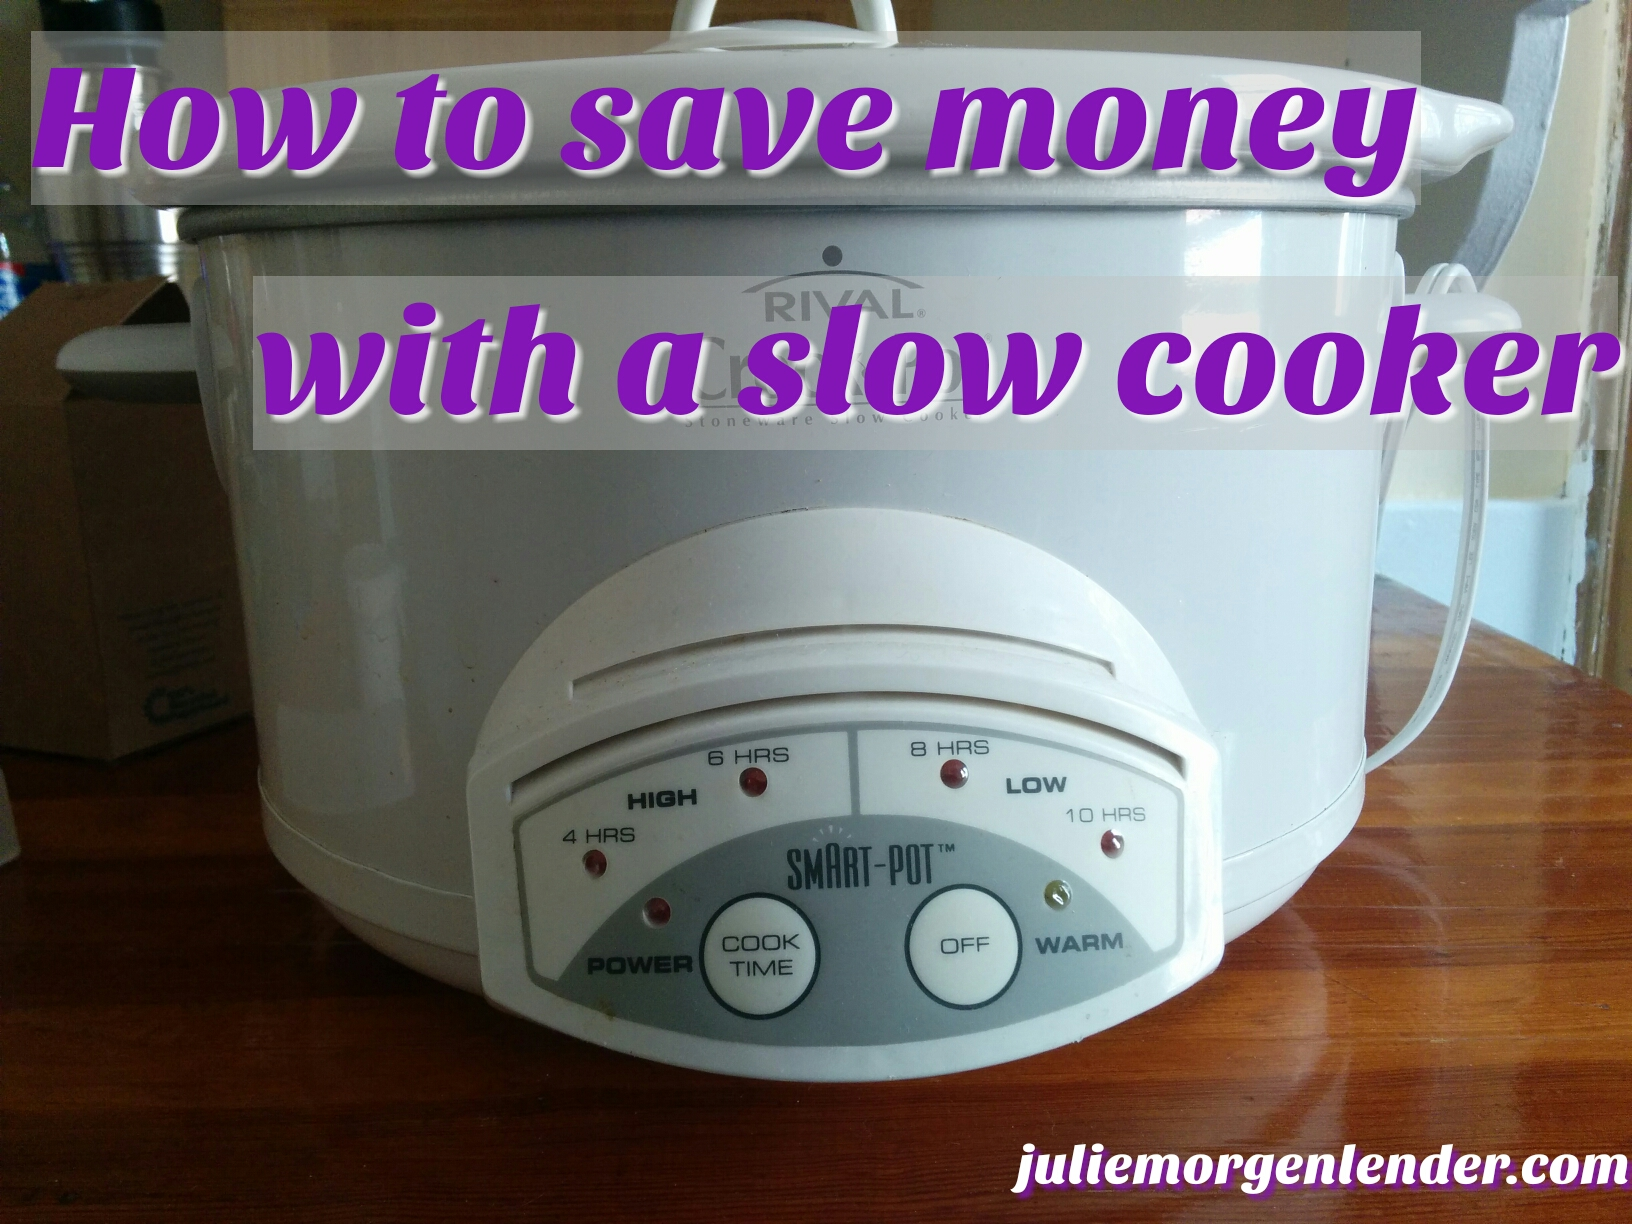 How to save money with a slow cooker